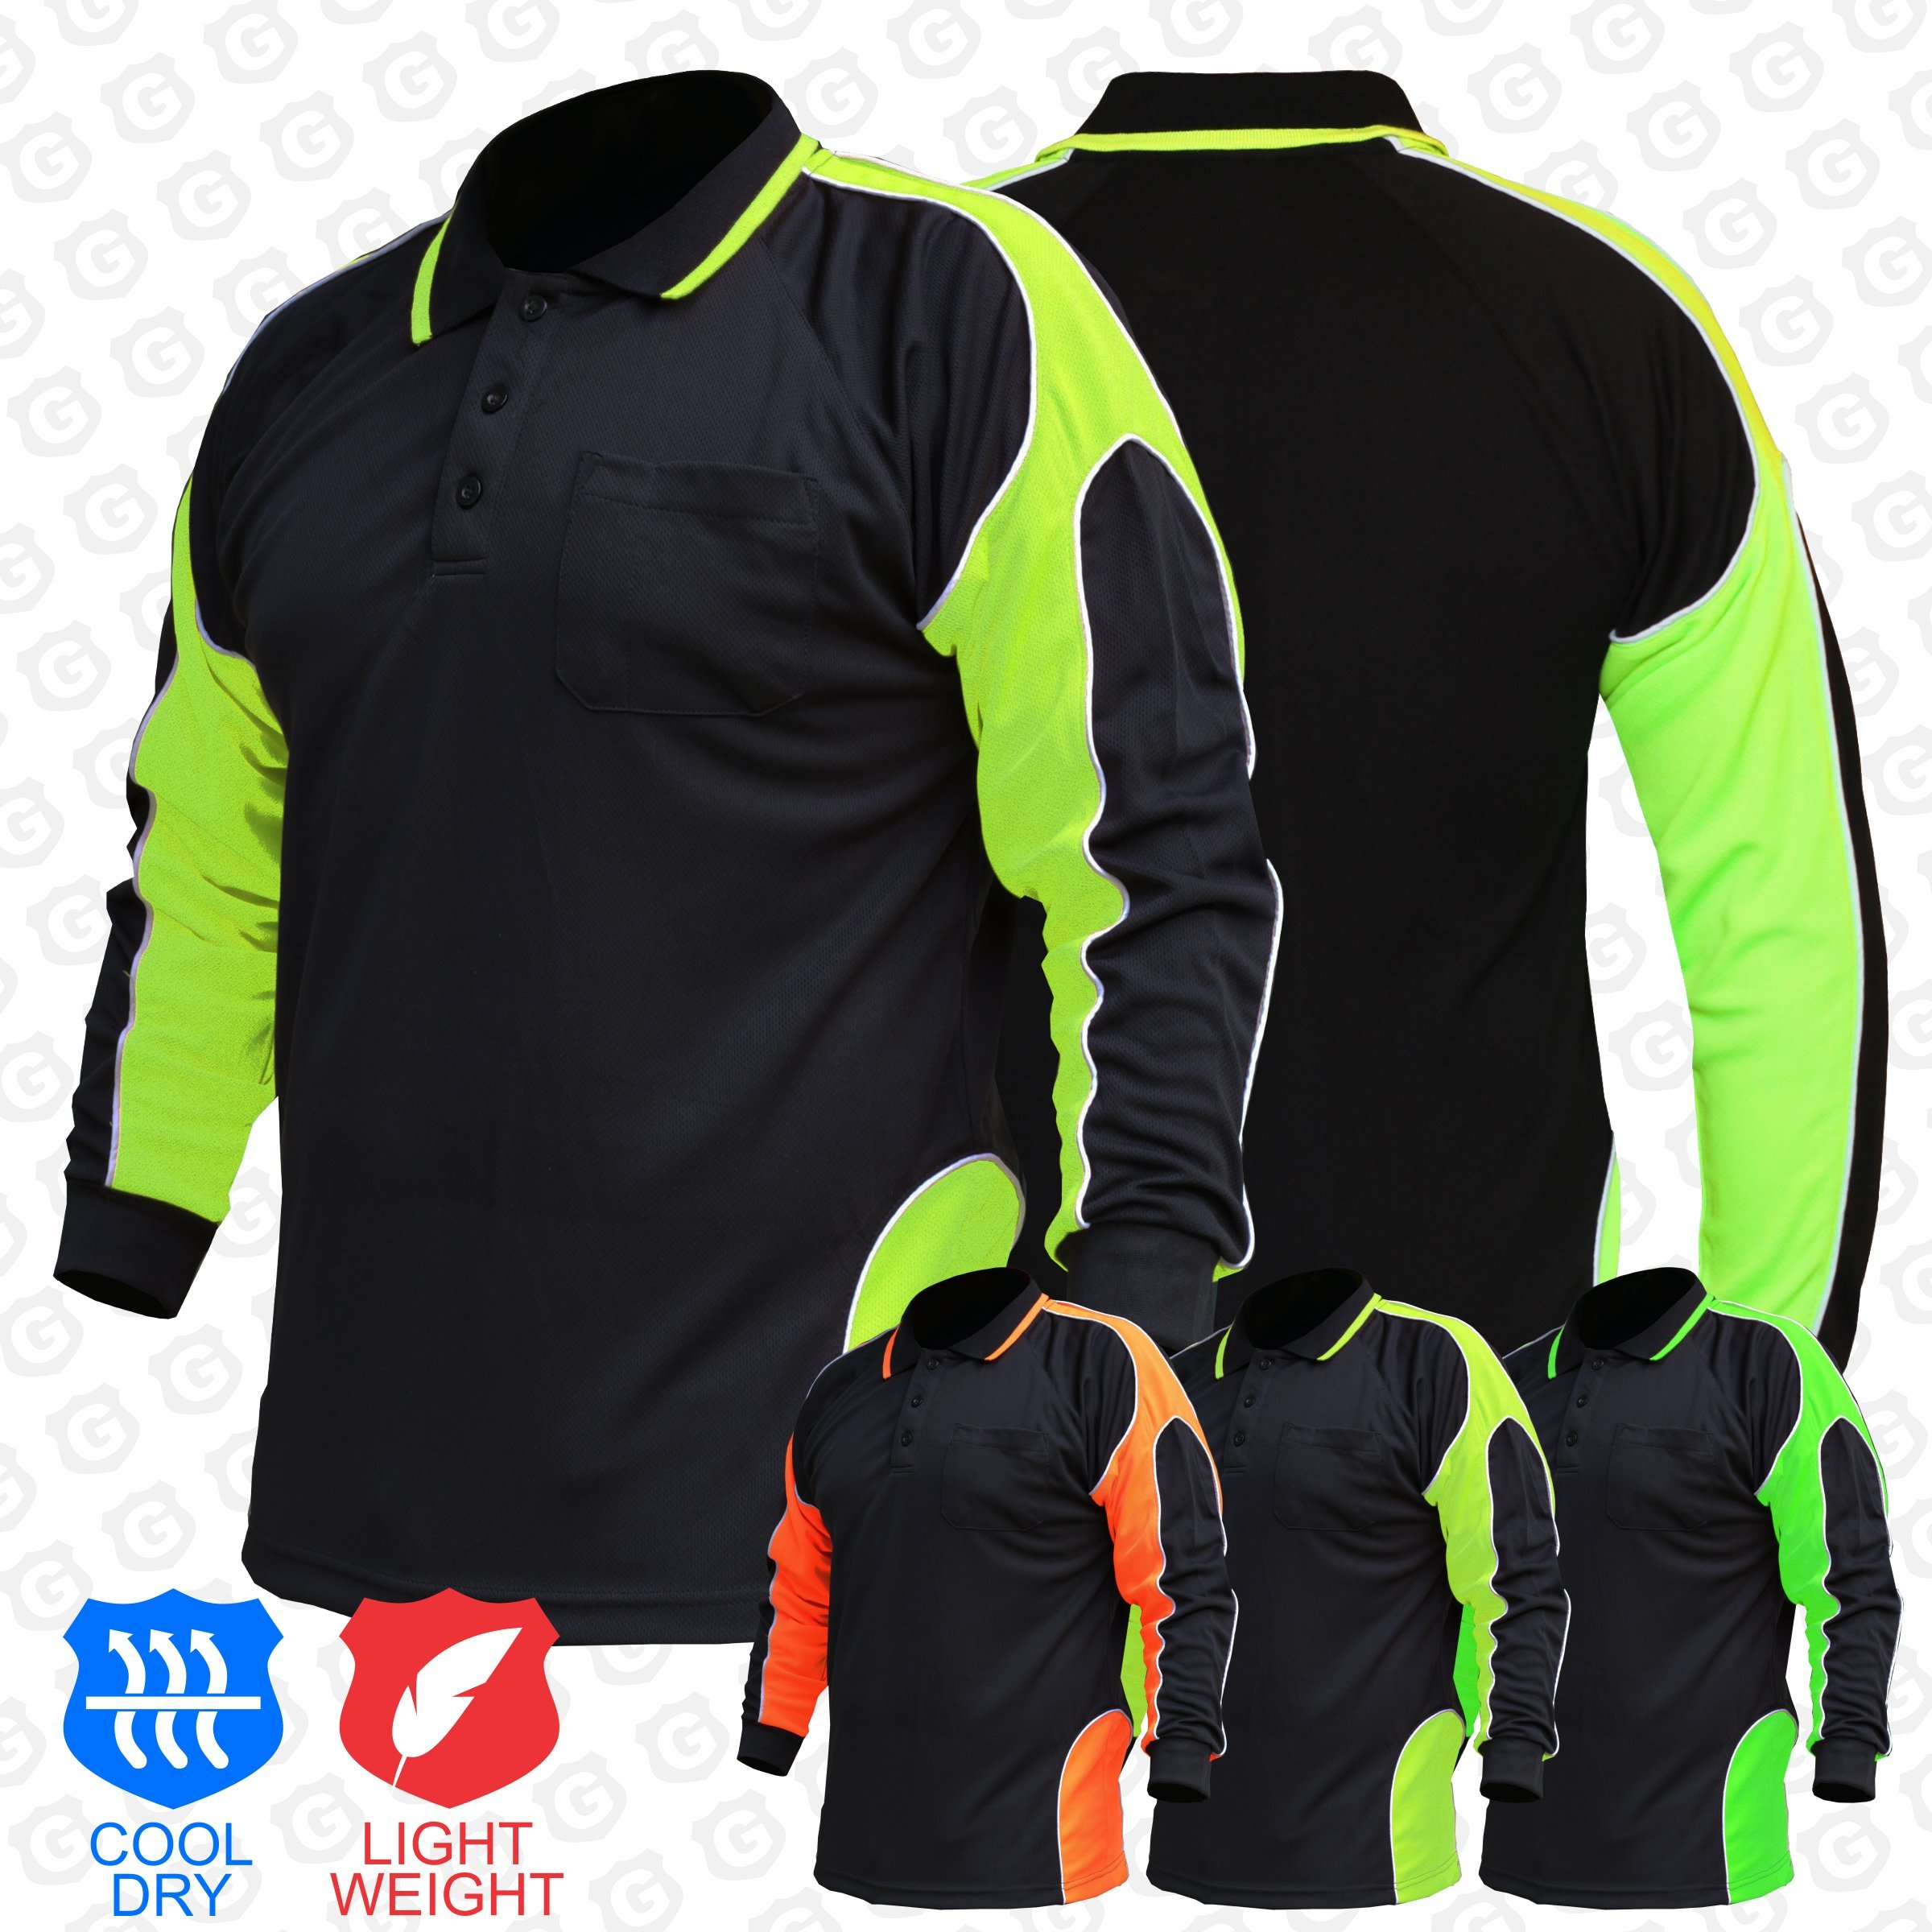 BIG BEE Hi Vis Polo Shirt Arm Panel with Piping Fluoro Work wear Cool Dry Long Sleeve (Pack of 2) by BIG BEE (Image #3)